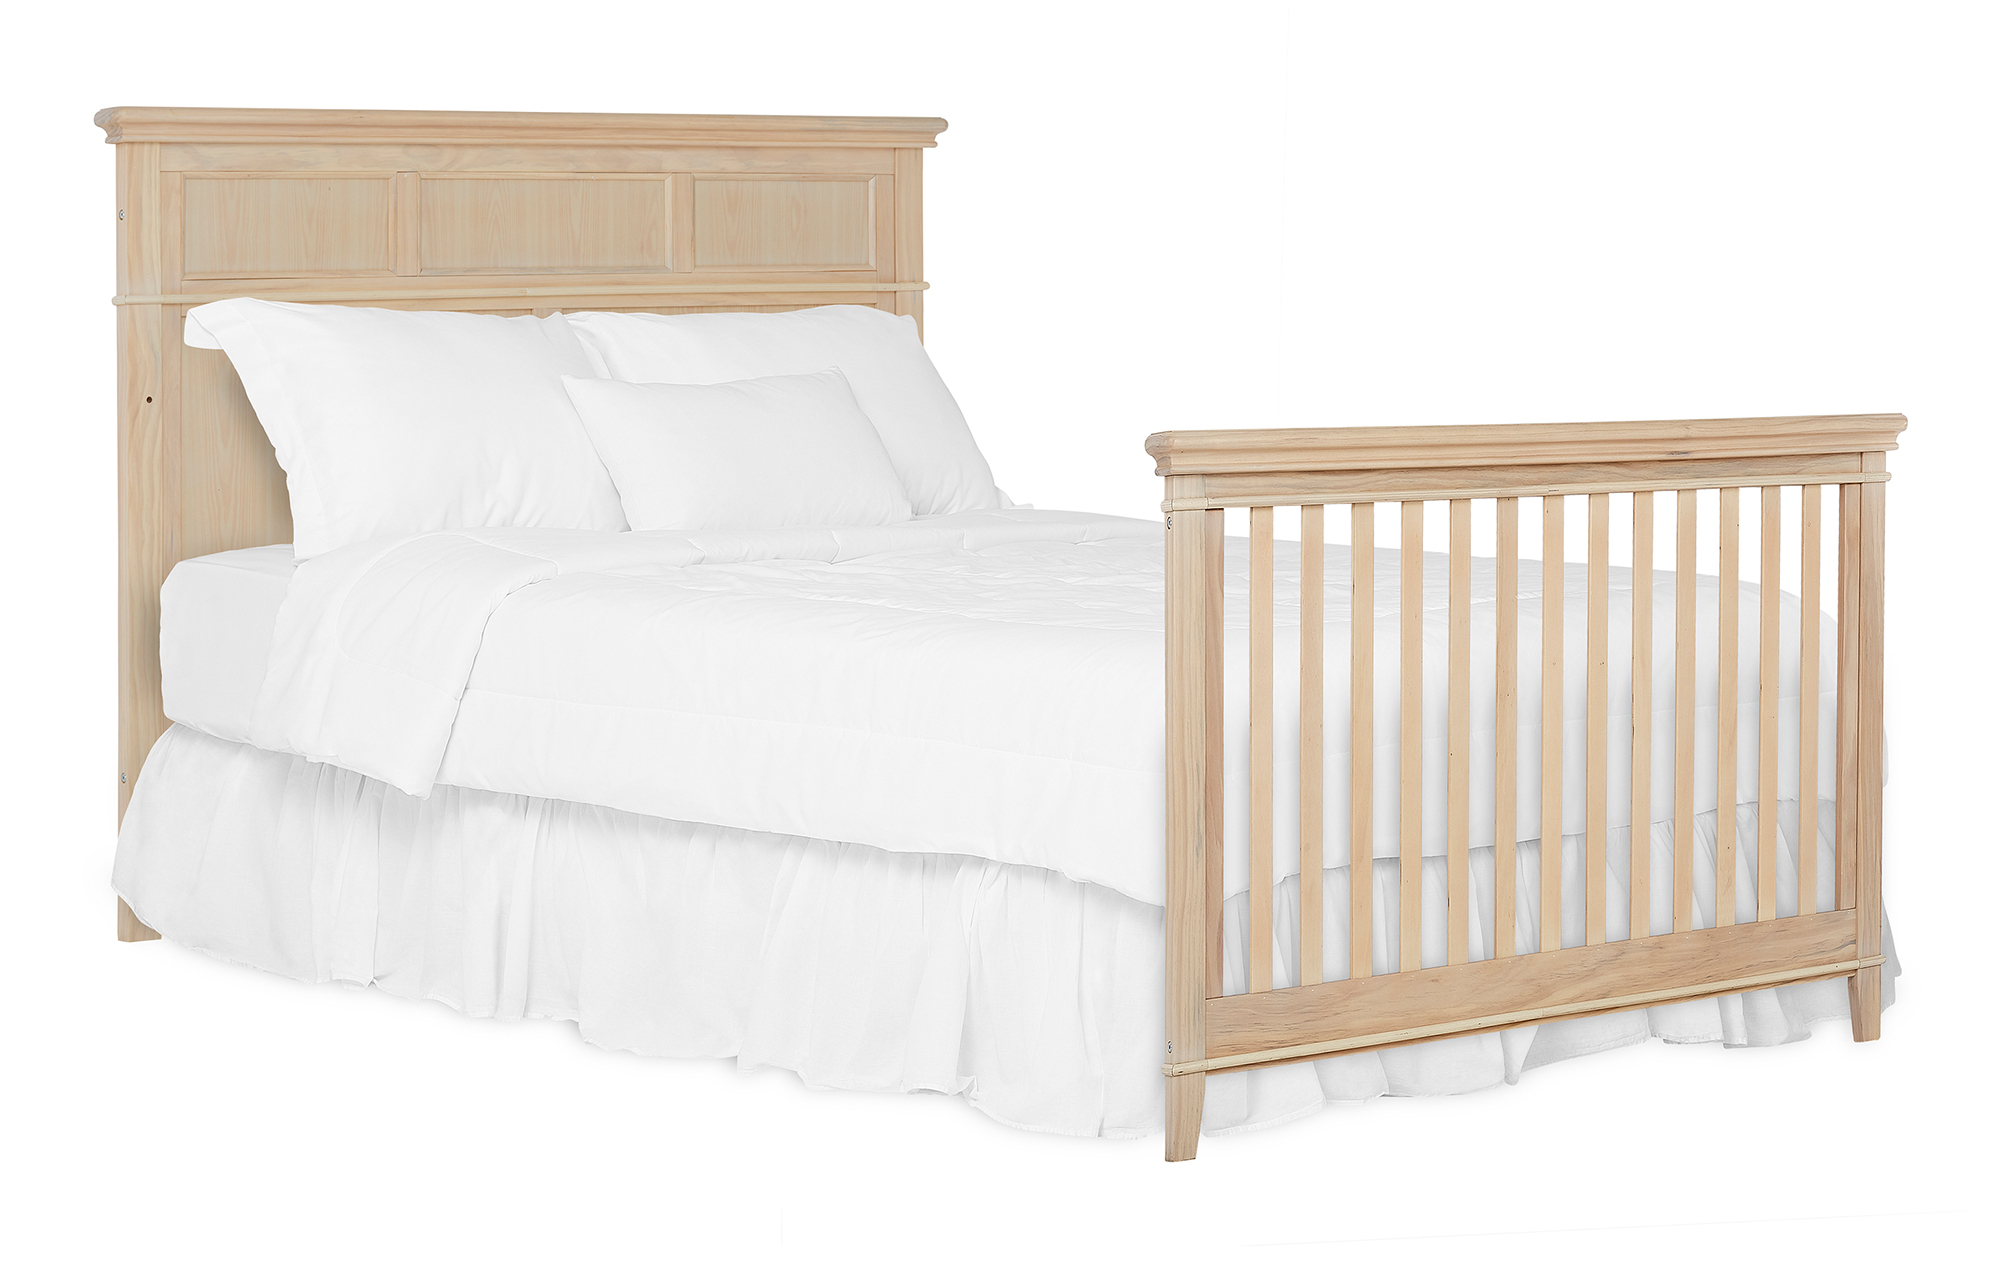 776-VOAK Dover Full Size Bed with Headboard